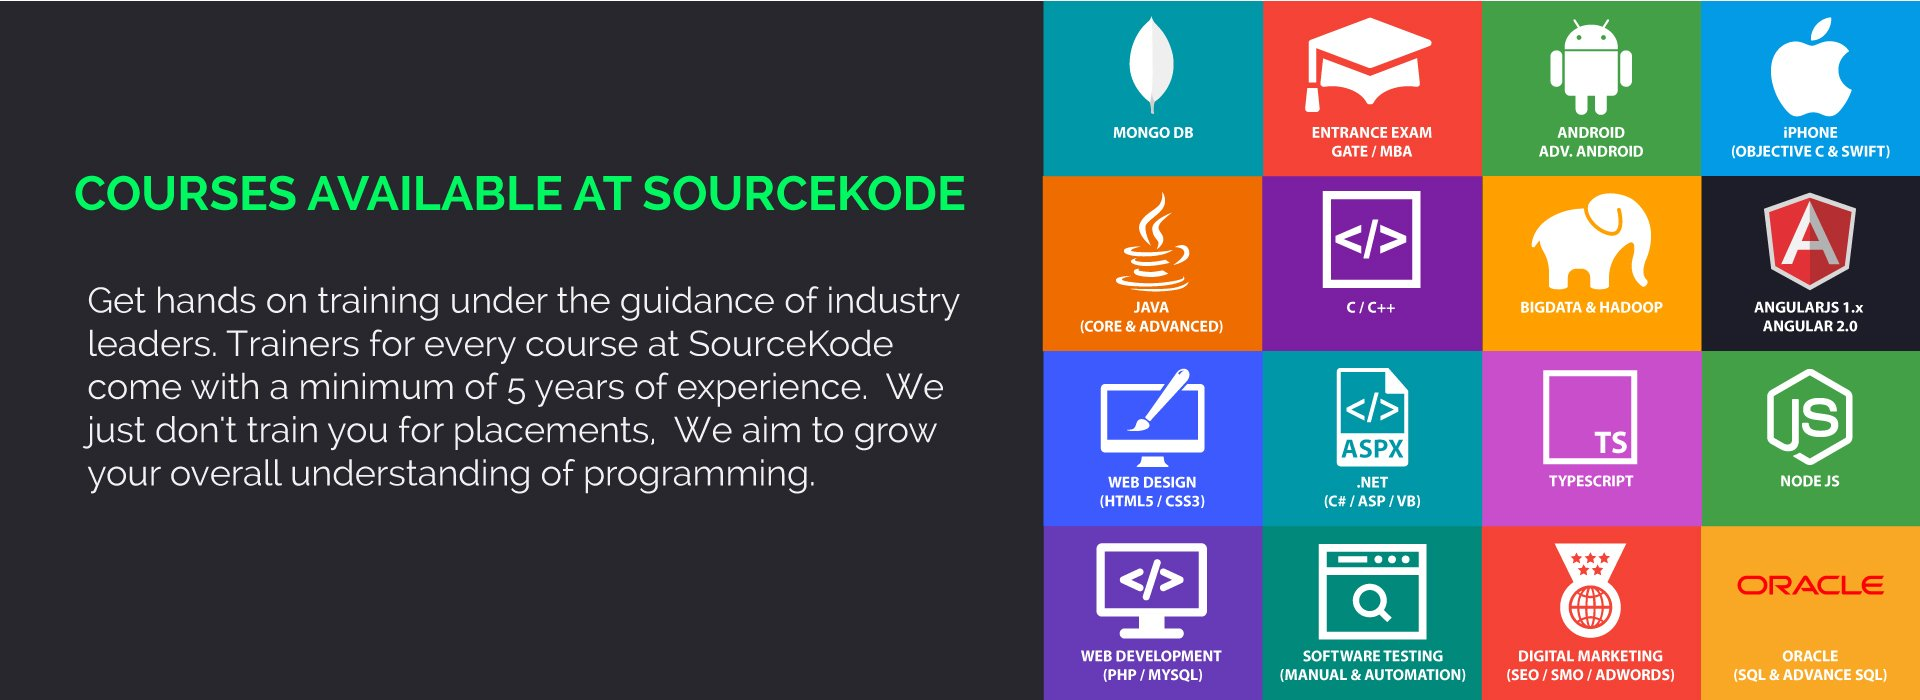 Courses at SourceKode